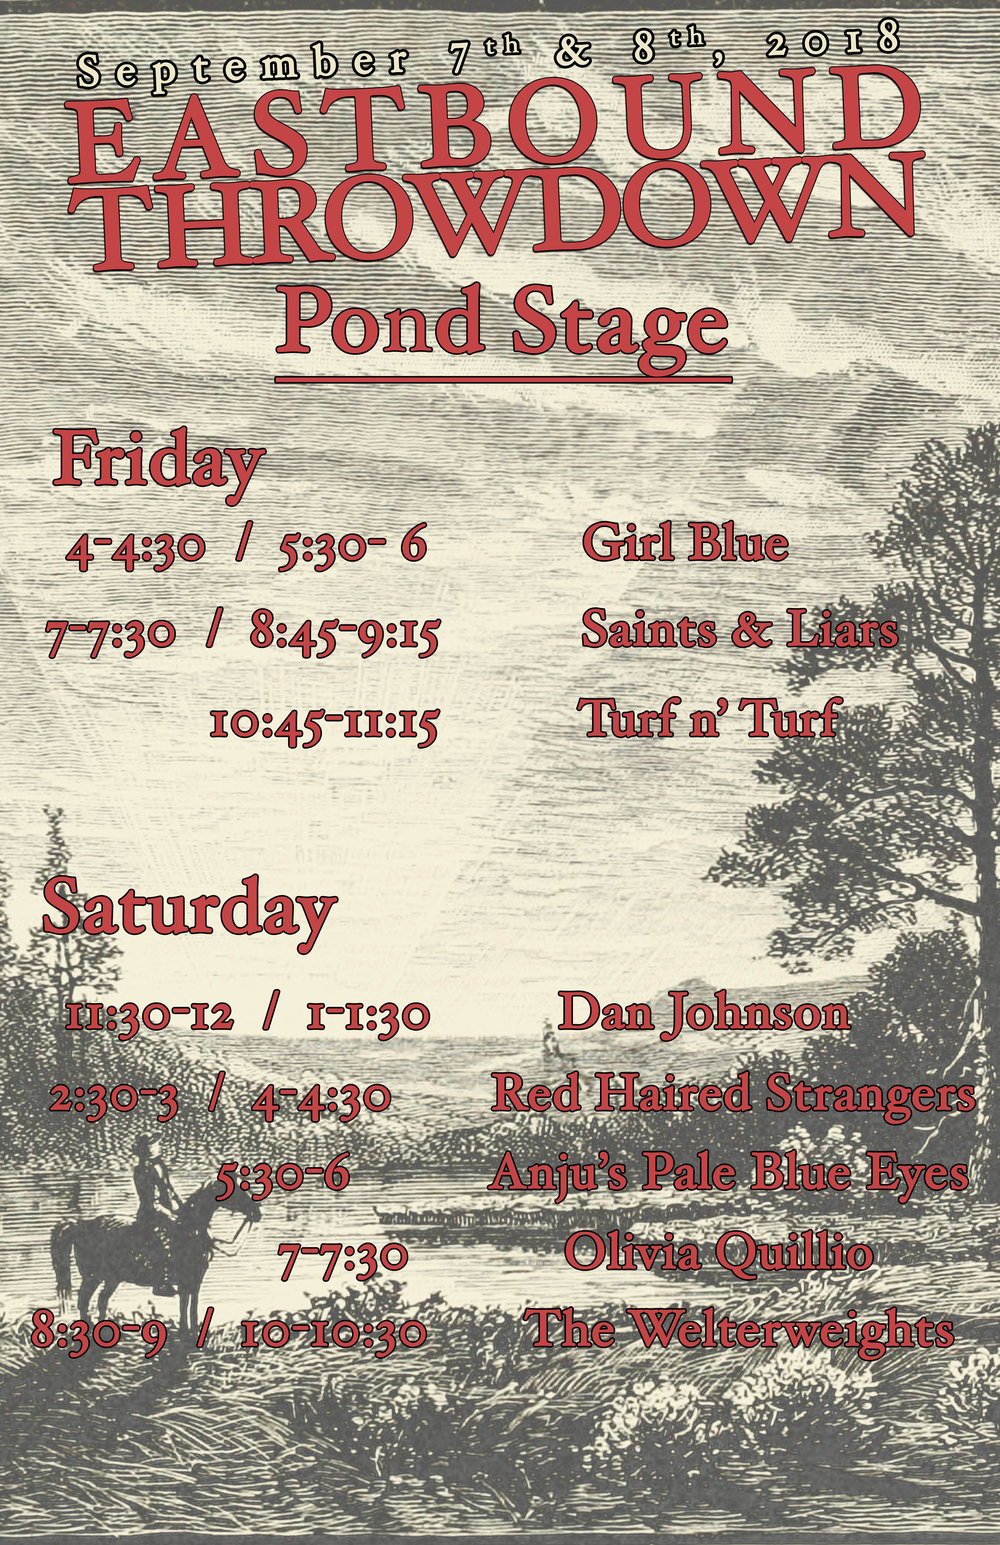 Throwdown Pond stage.jpg